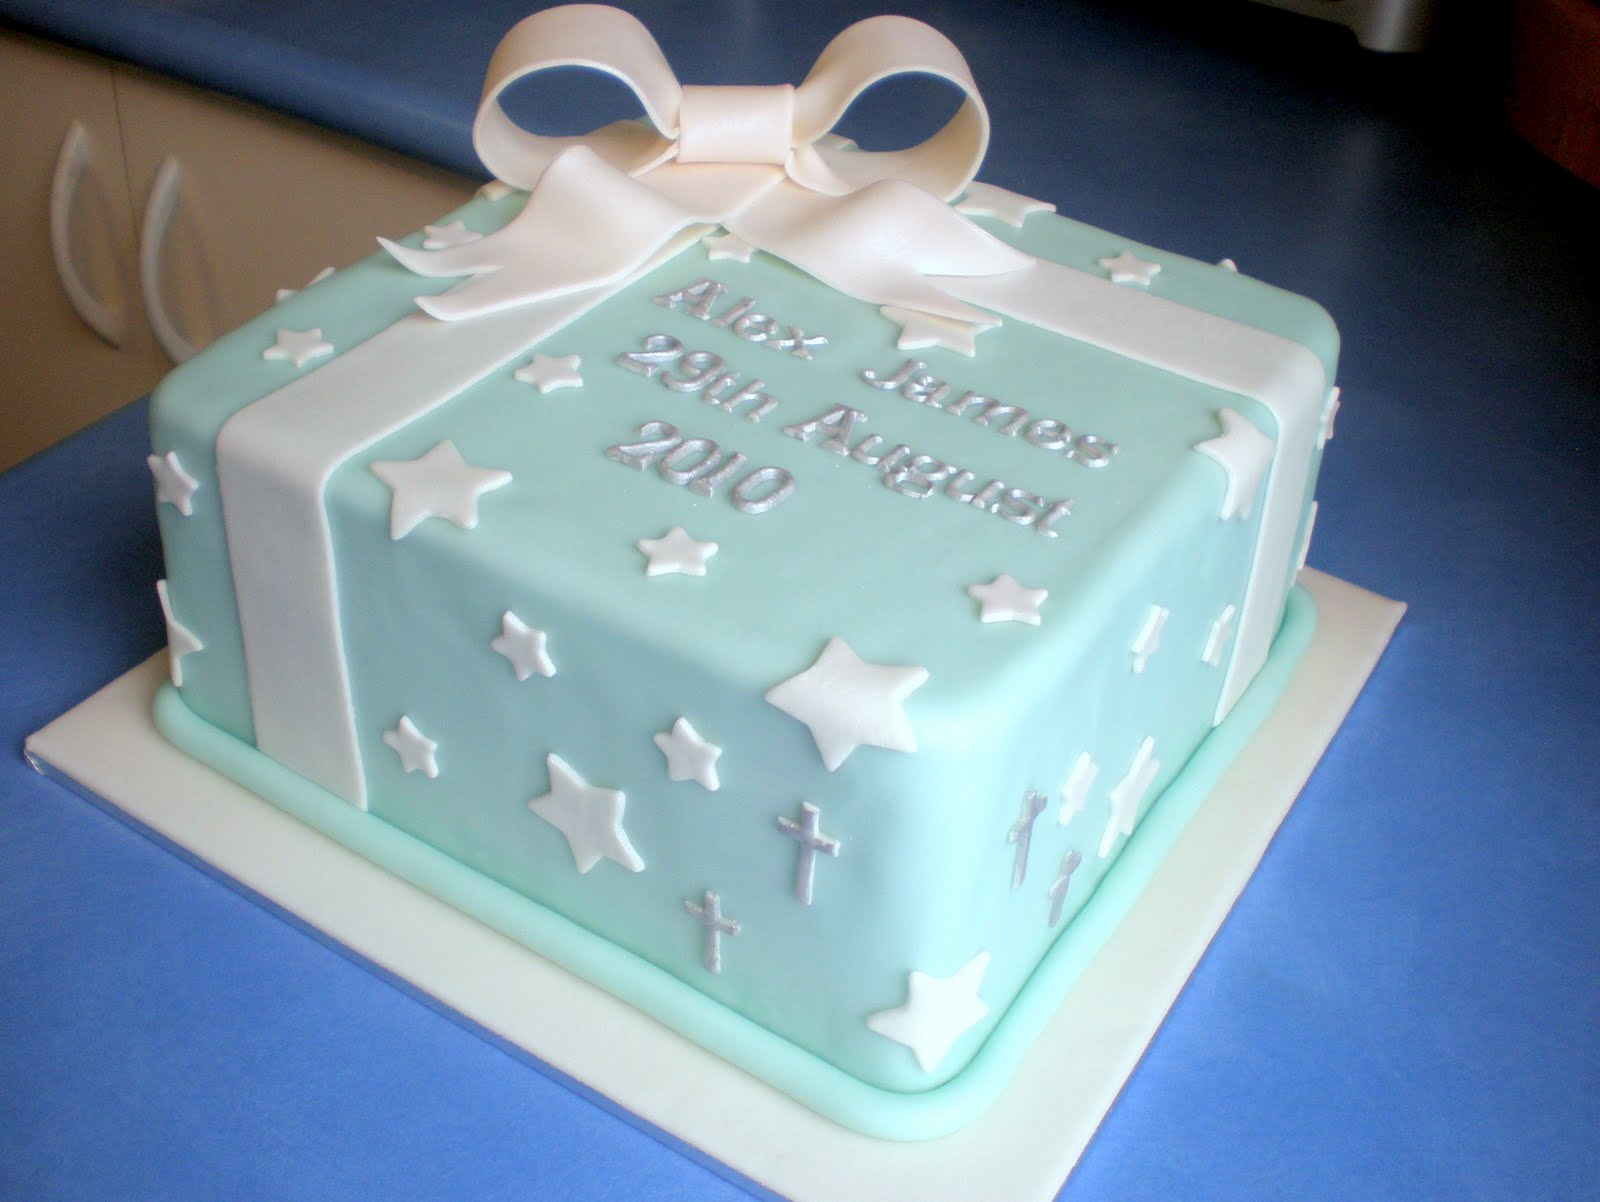 Birthday Cake Design For A Baby Boy : Boy Baptism Cakes on Pinterest Baptism Cakes ...